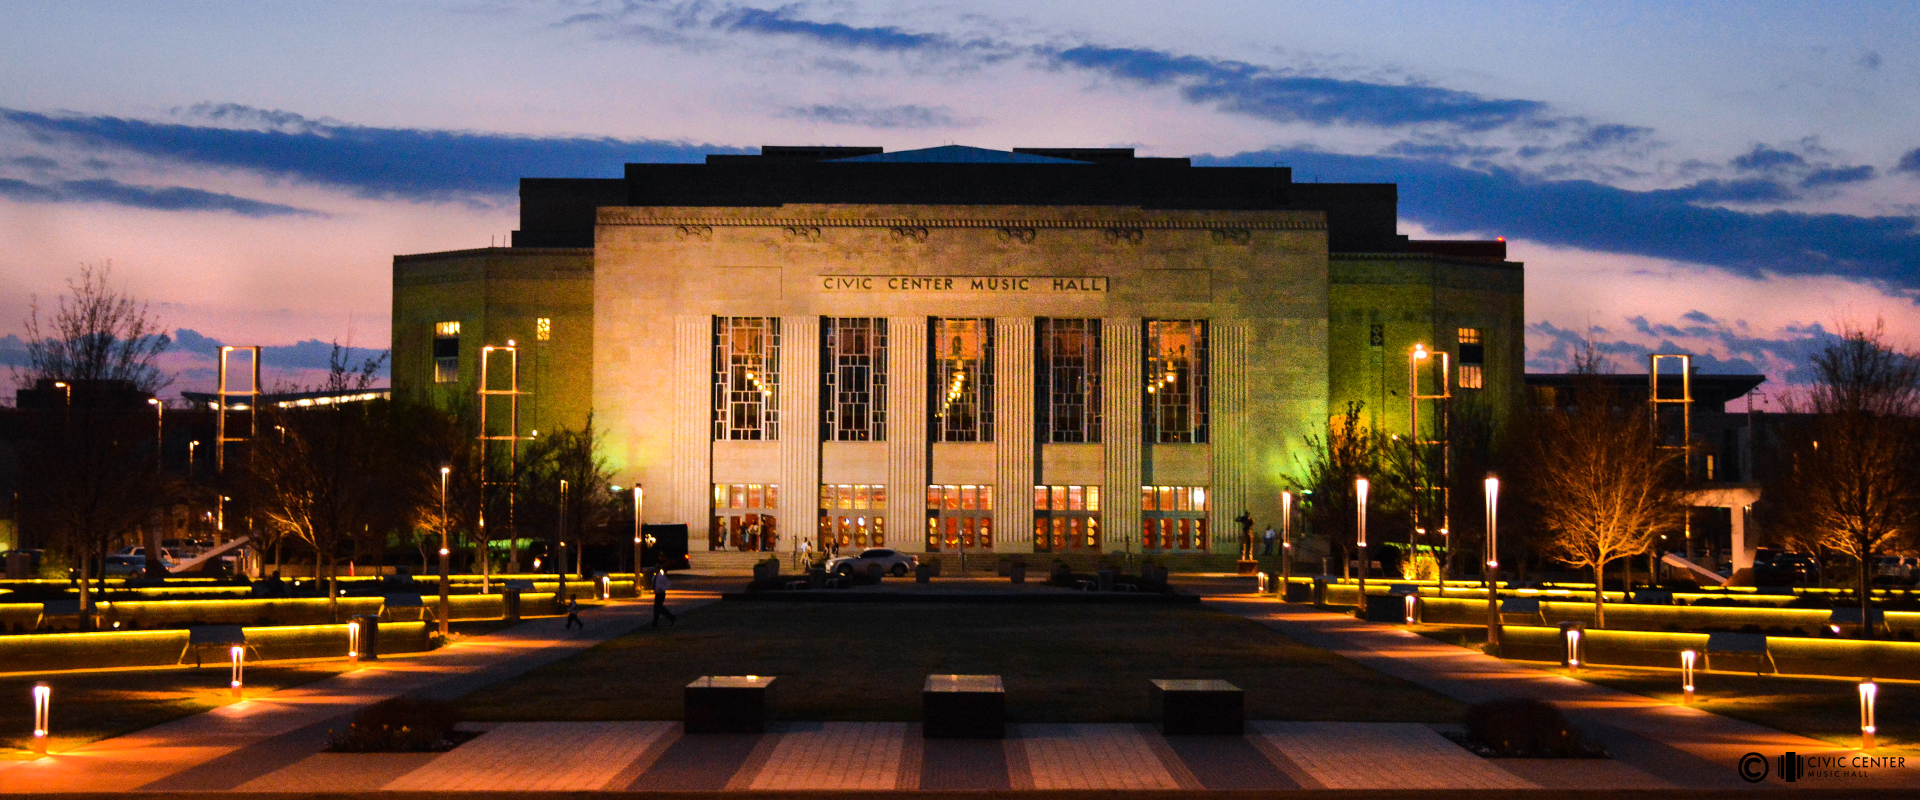 Okc Christmas Events.Oklahoma City Civic Center Music Hall Featured Shows